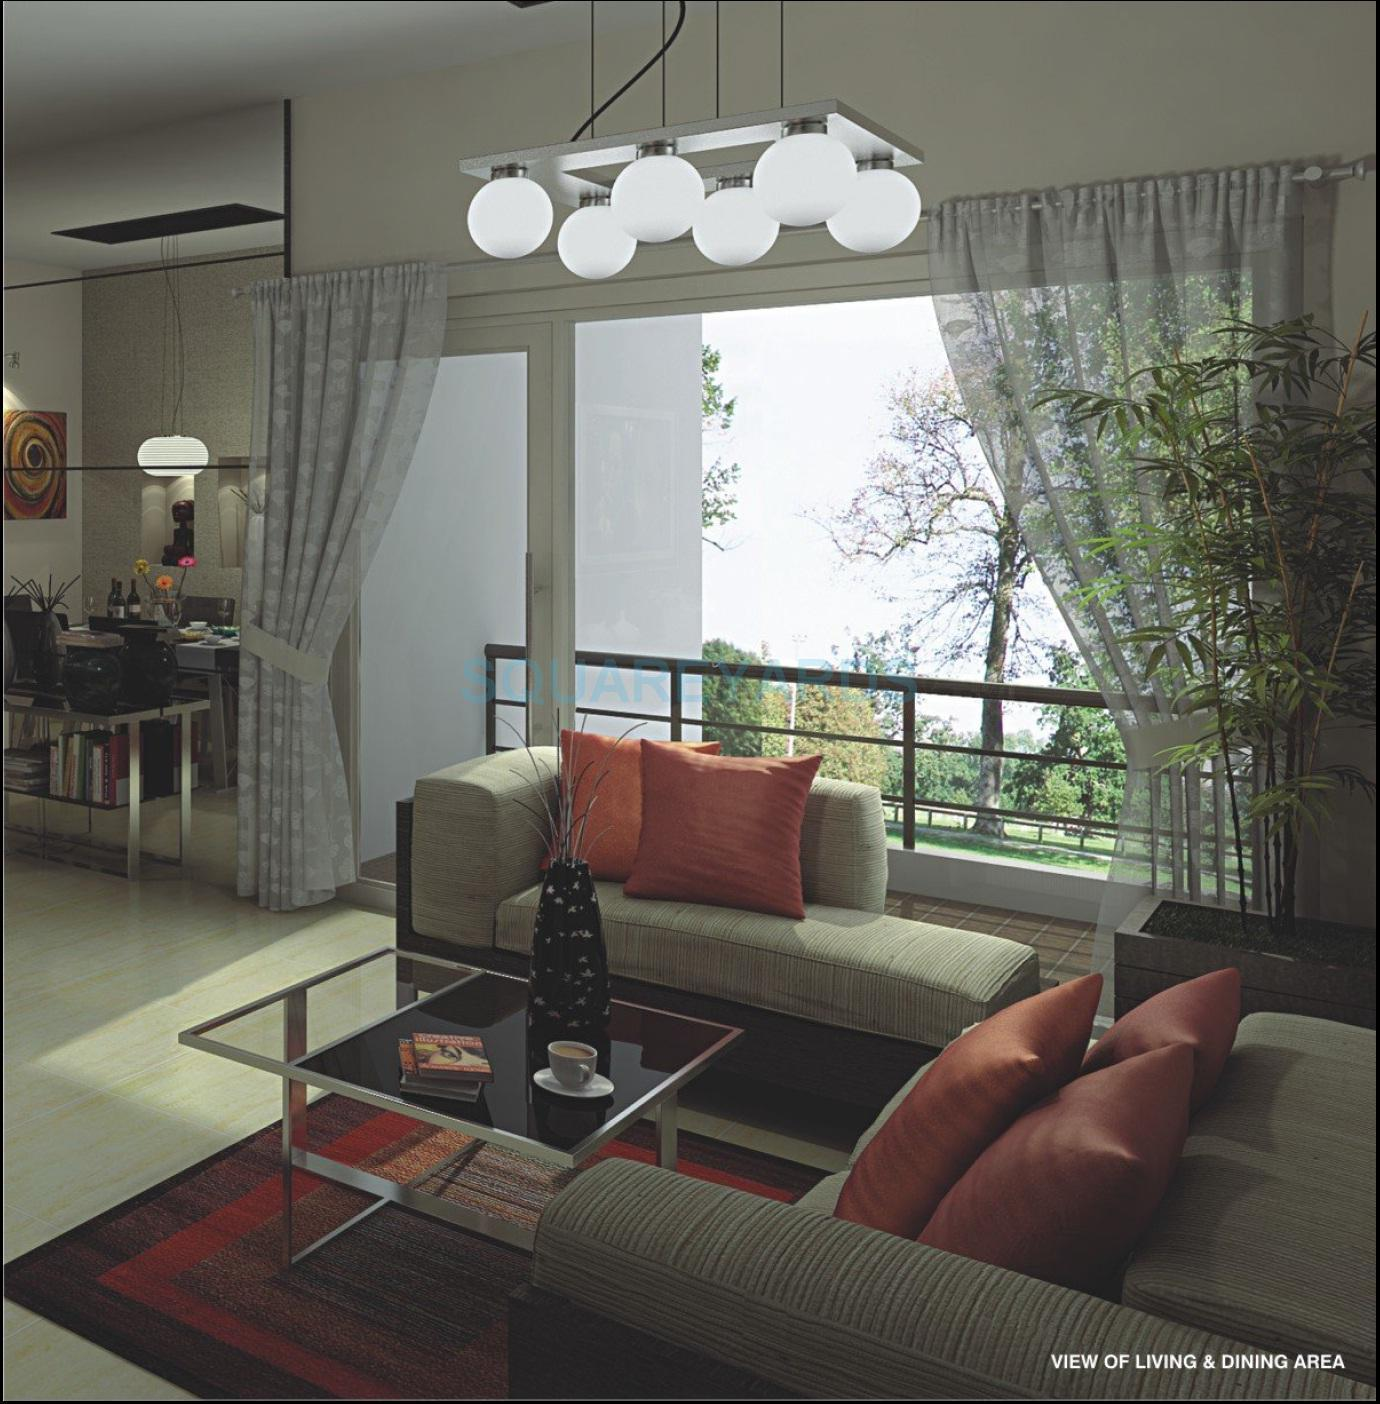 3c lotus boulevard apartment interiors1